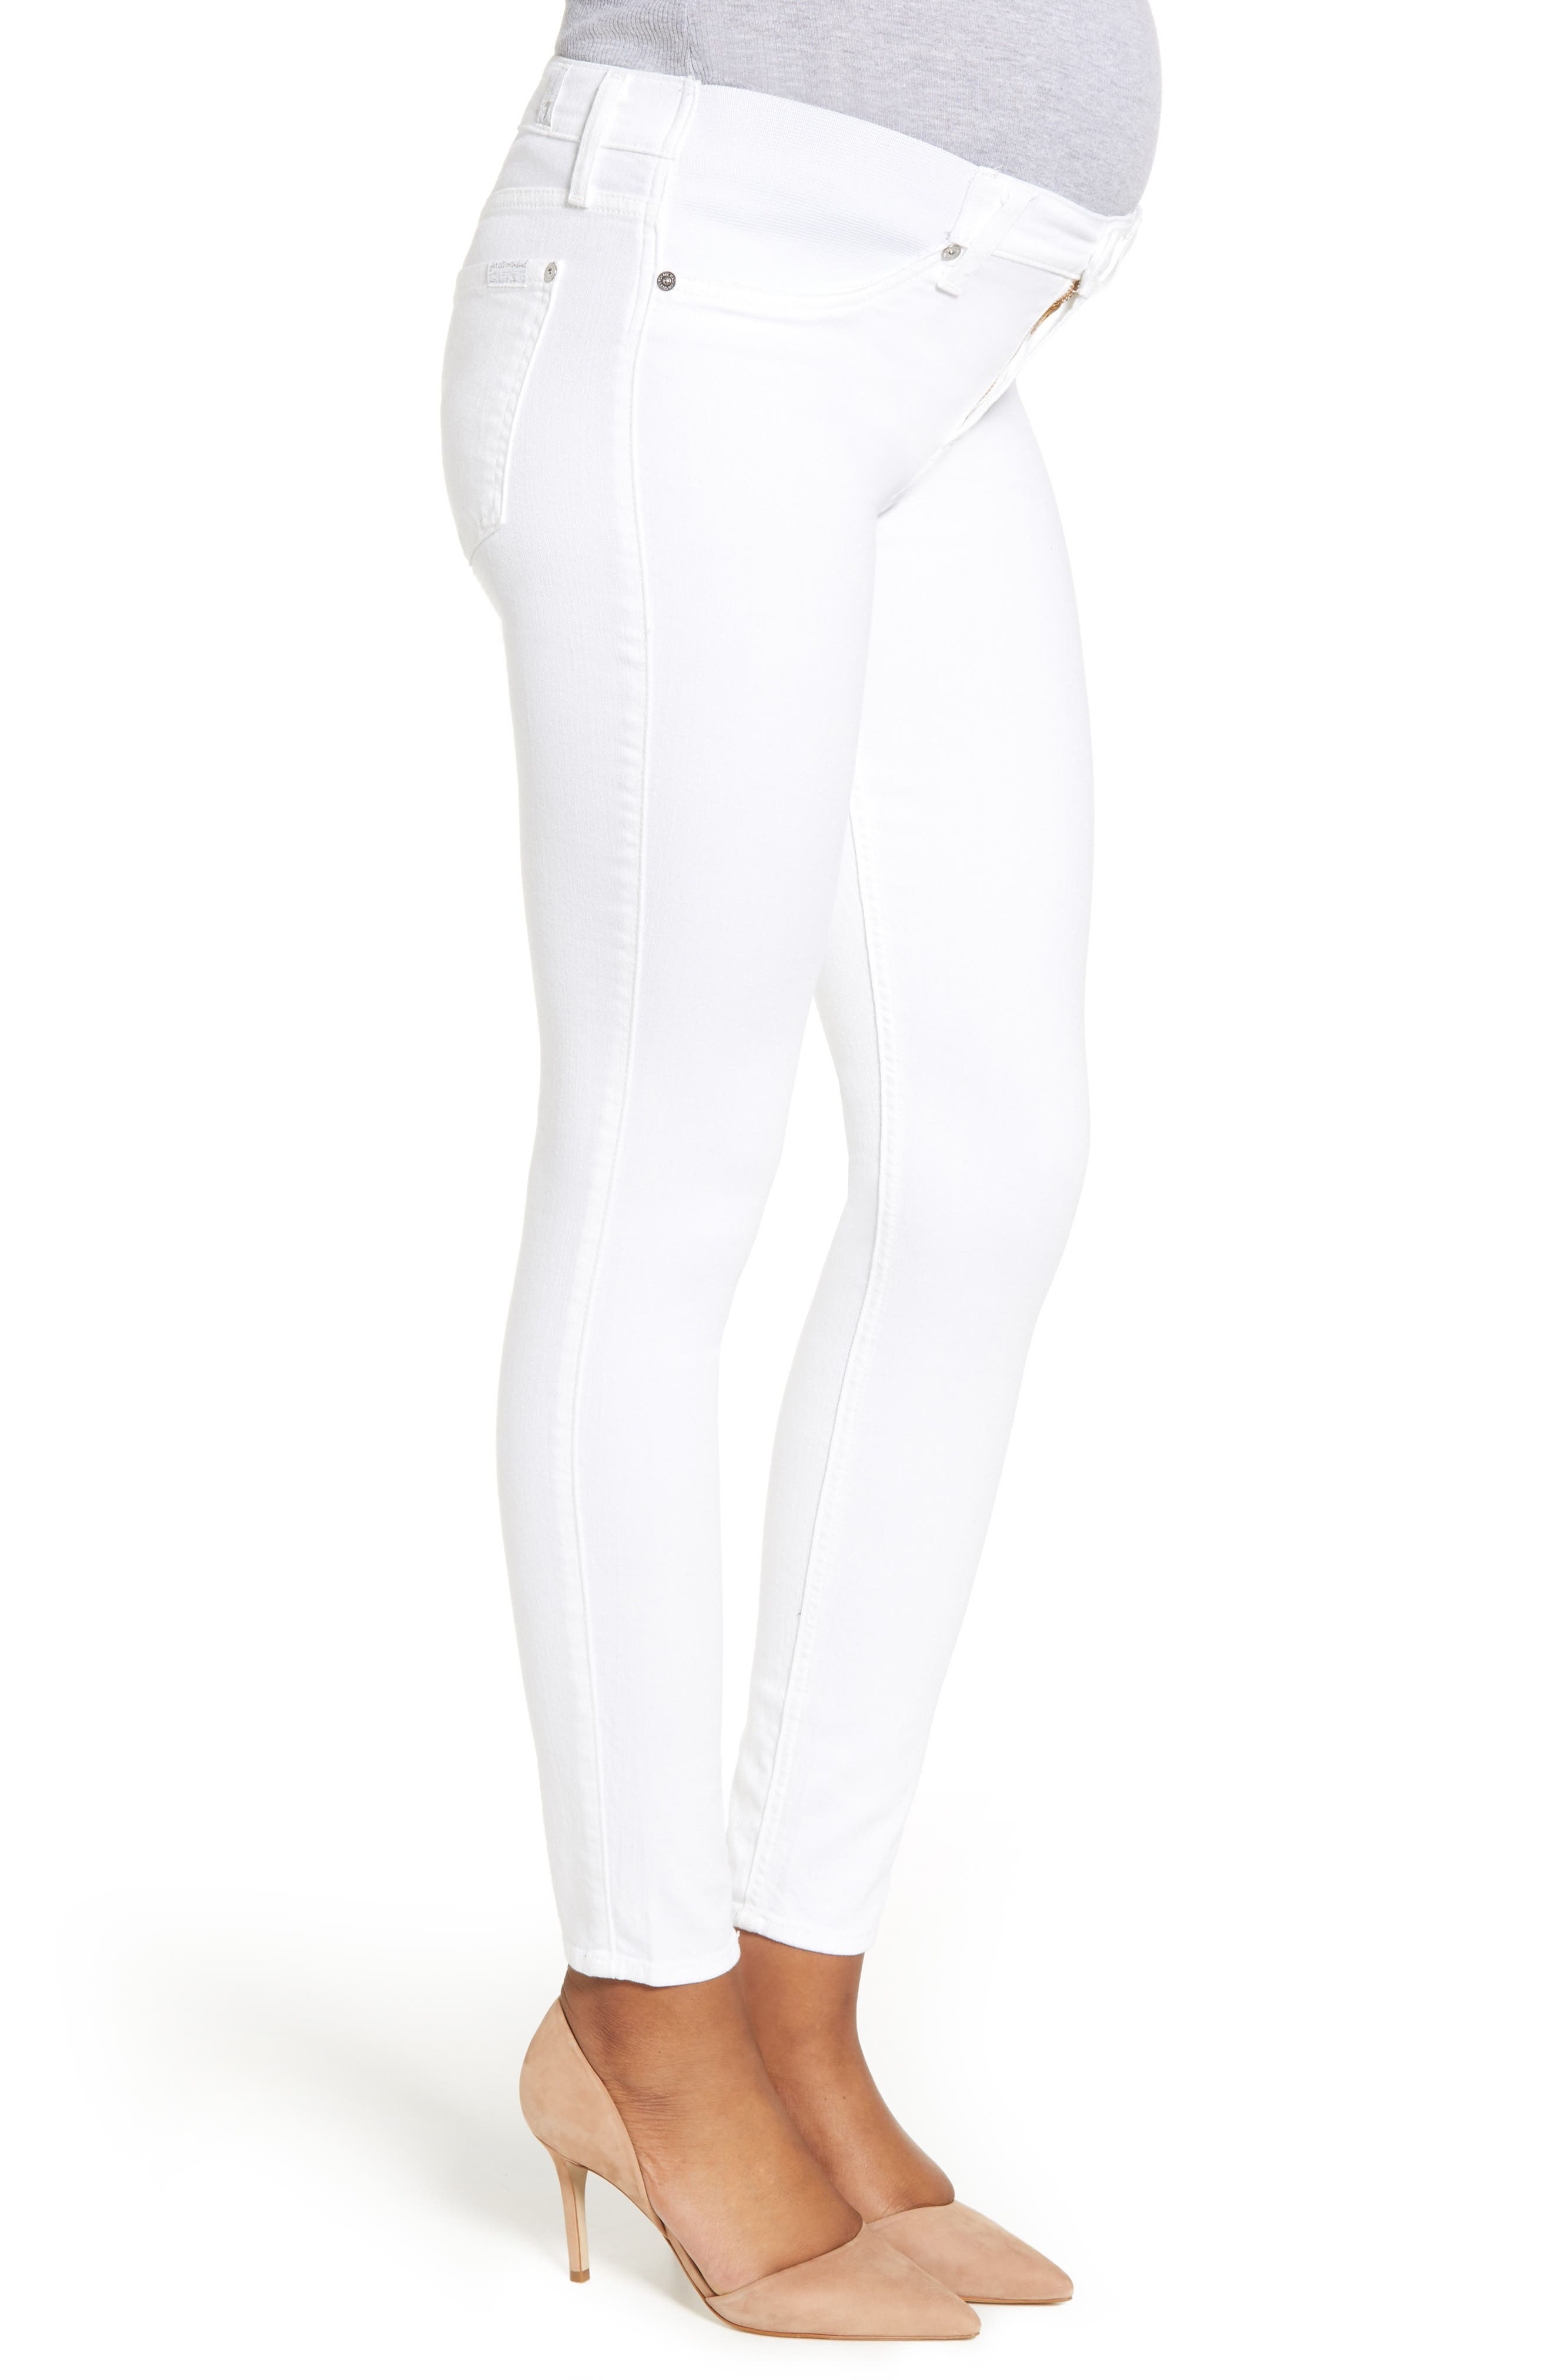 7 FOR ALL MANKIND<SUP>®</SUP>, The Ankle Skinny Maternity Jeans, Alternate thumbnail 4, color, CLEAN WHITE